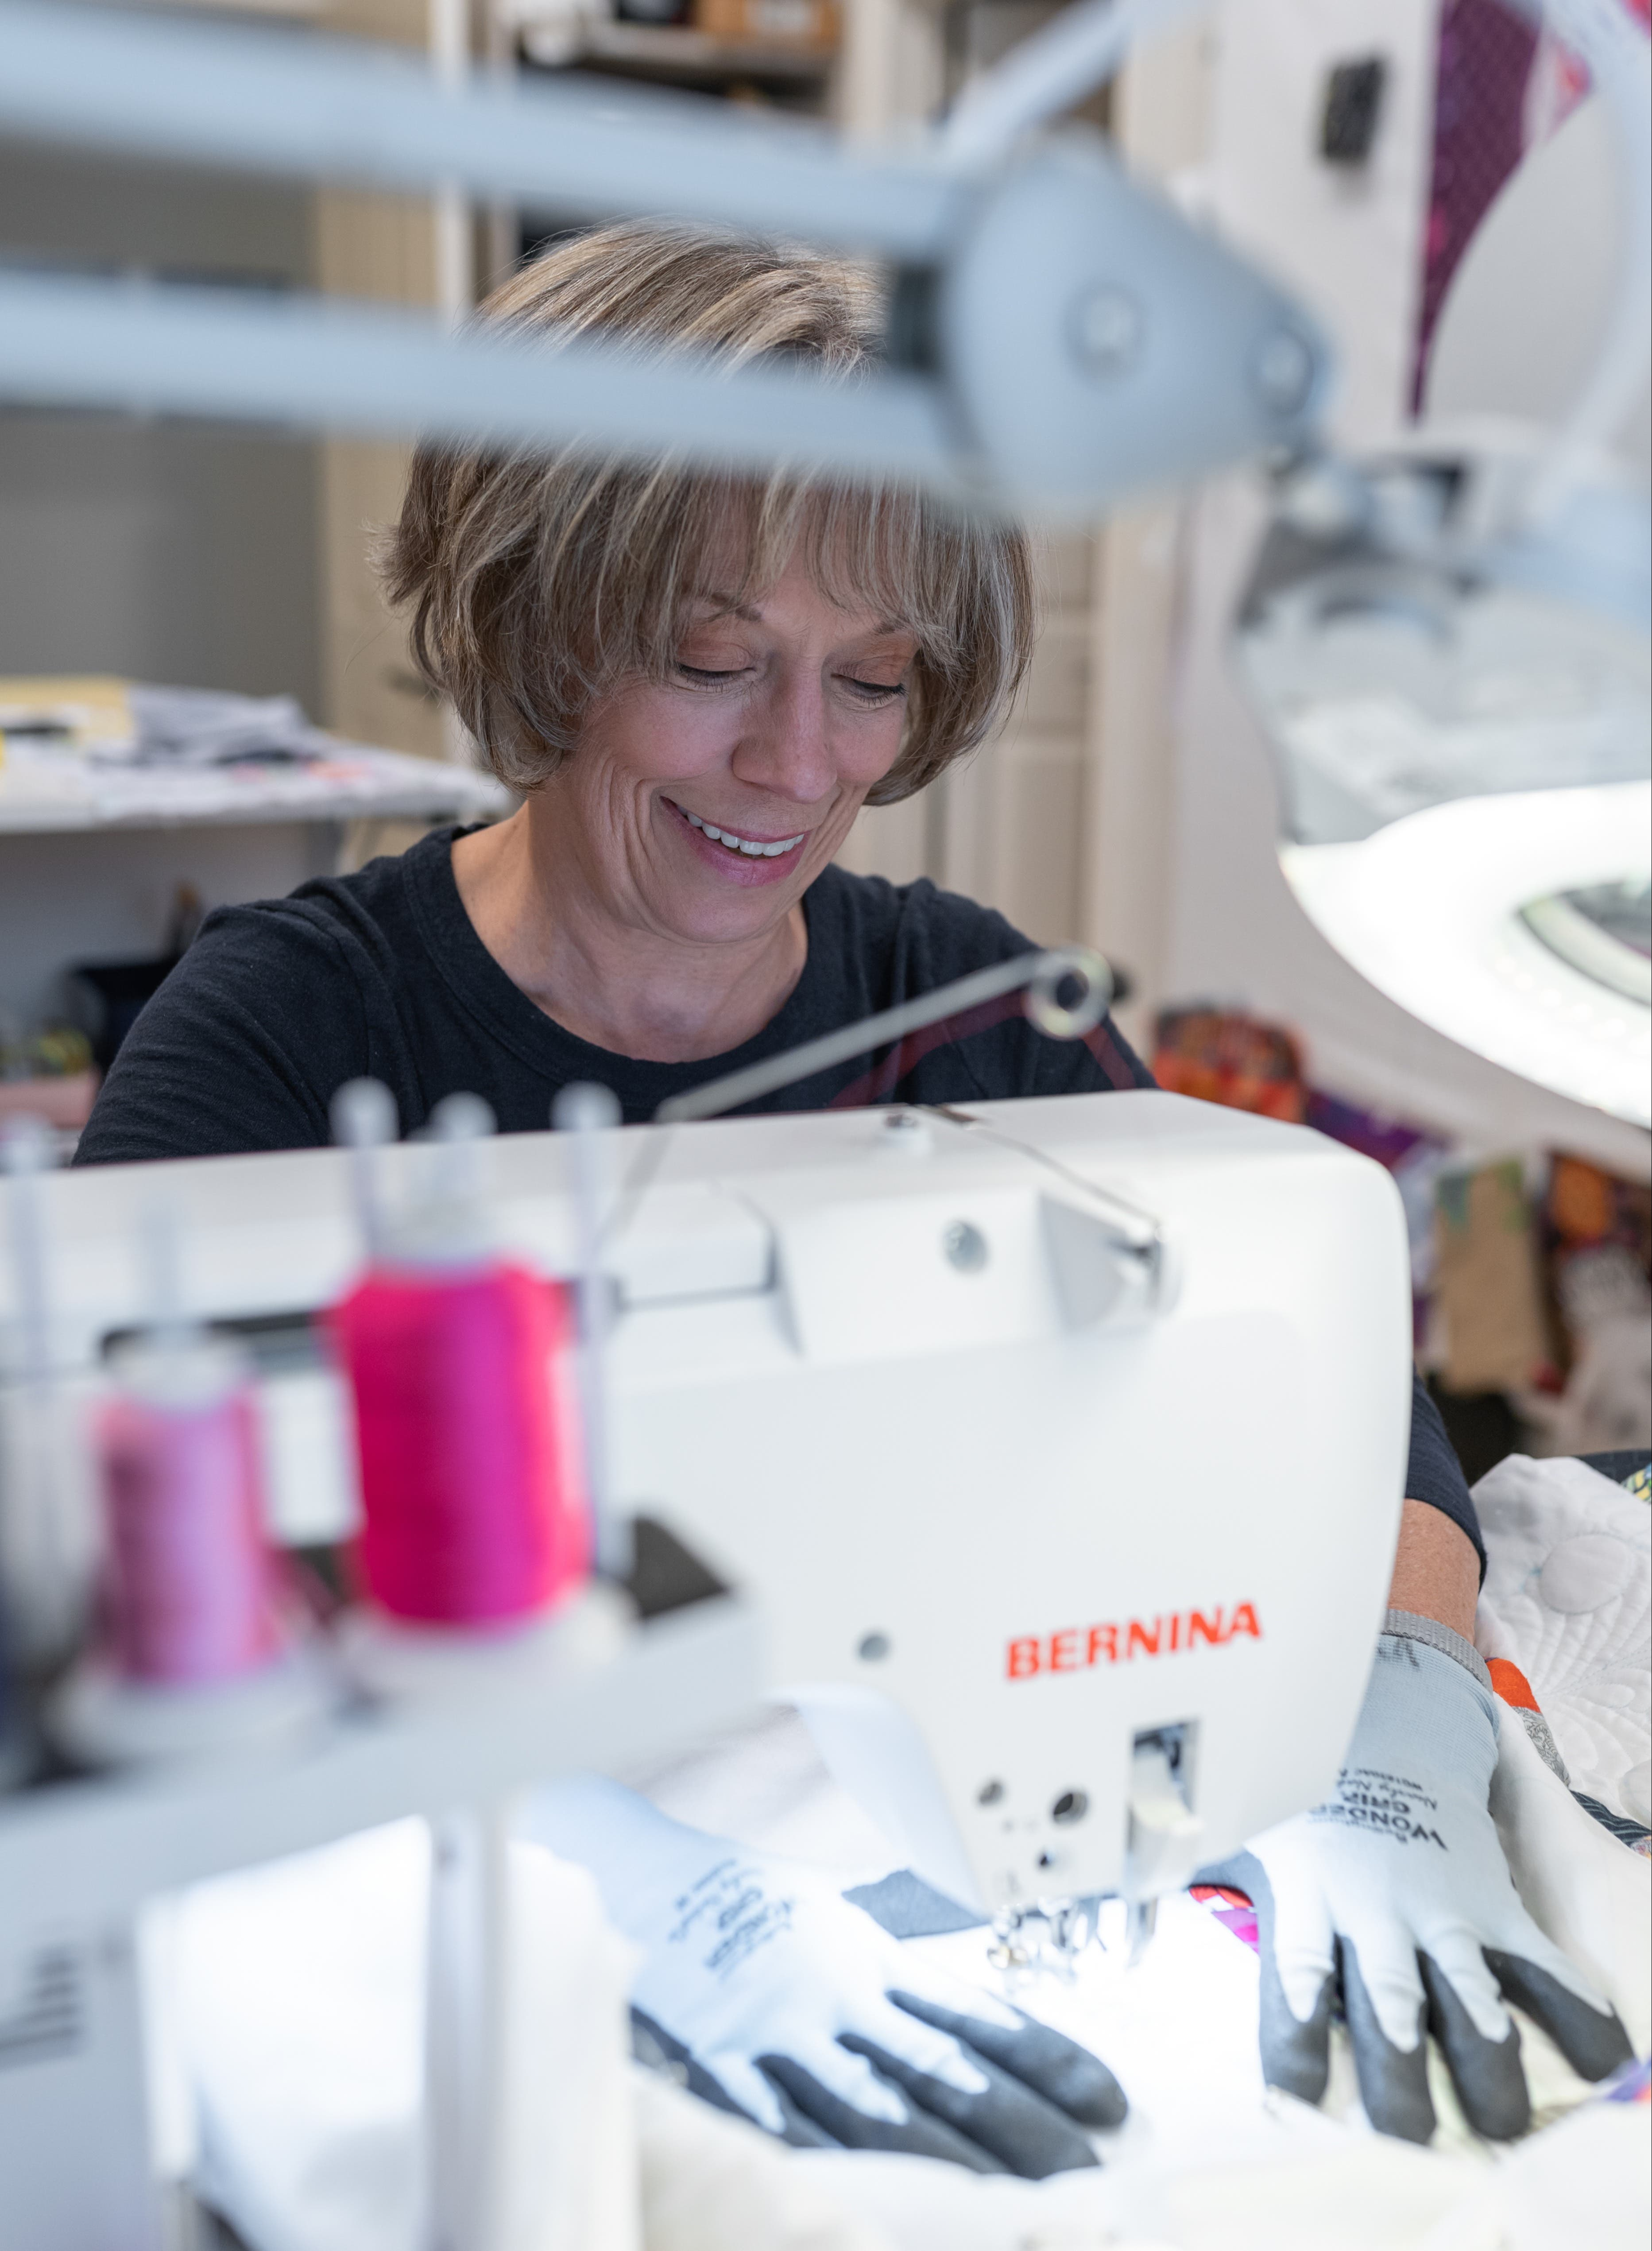 Jenny Lyon free motion quilting at the sewing machine and smiling.